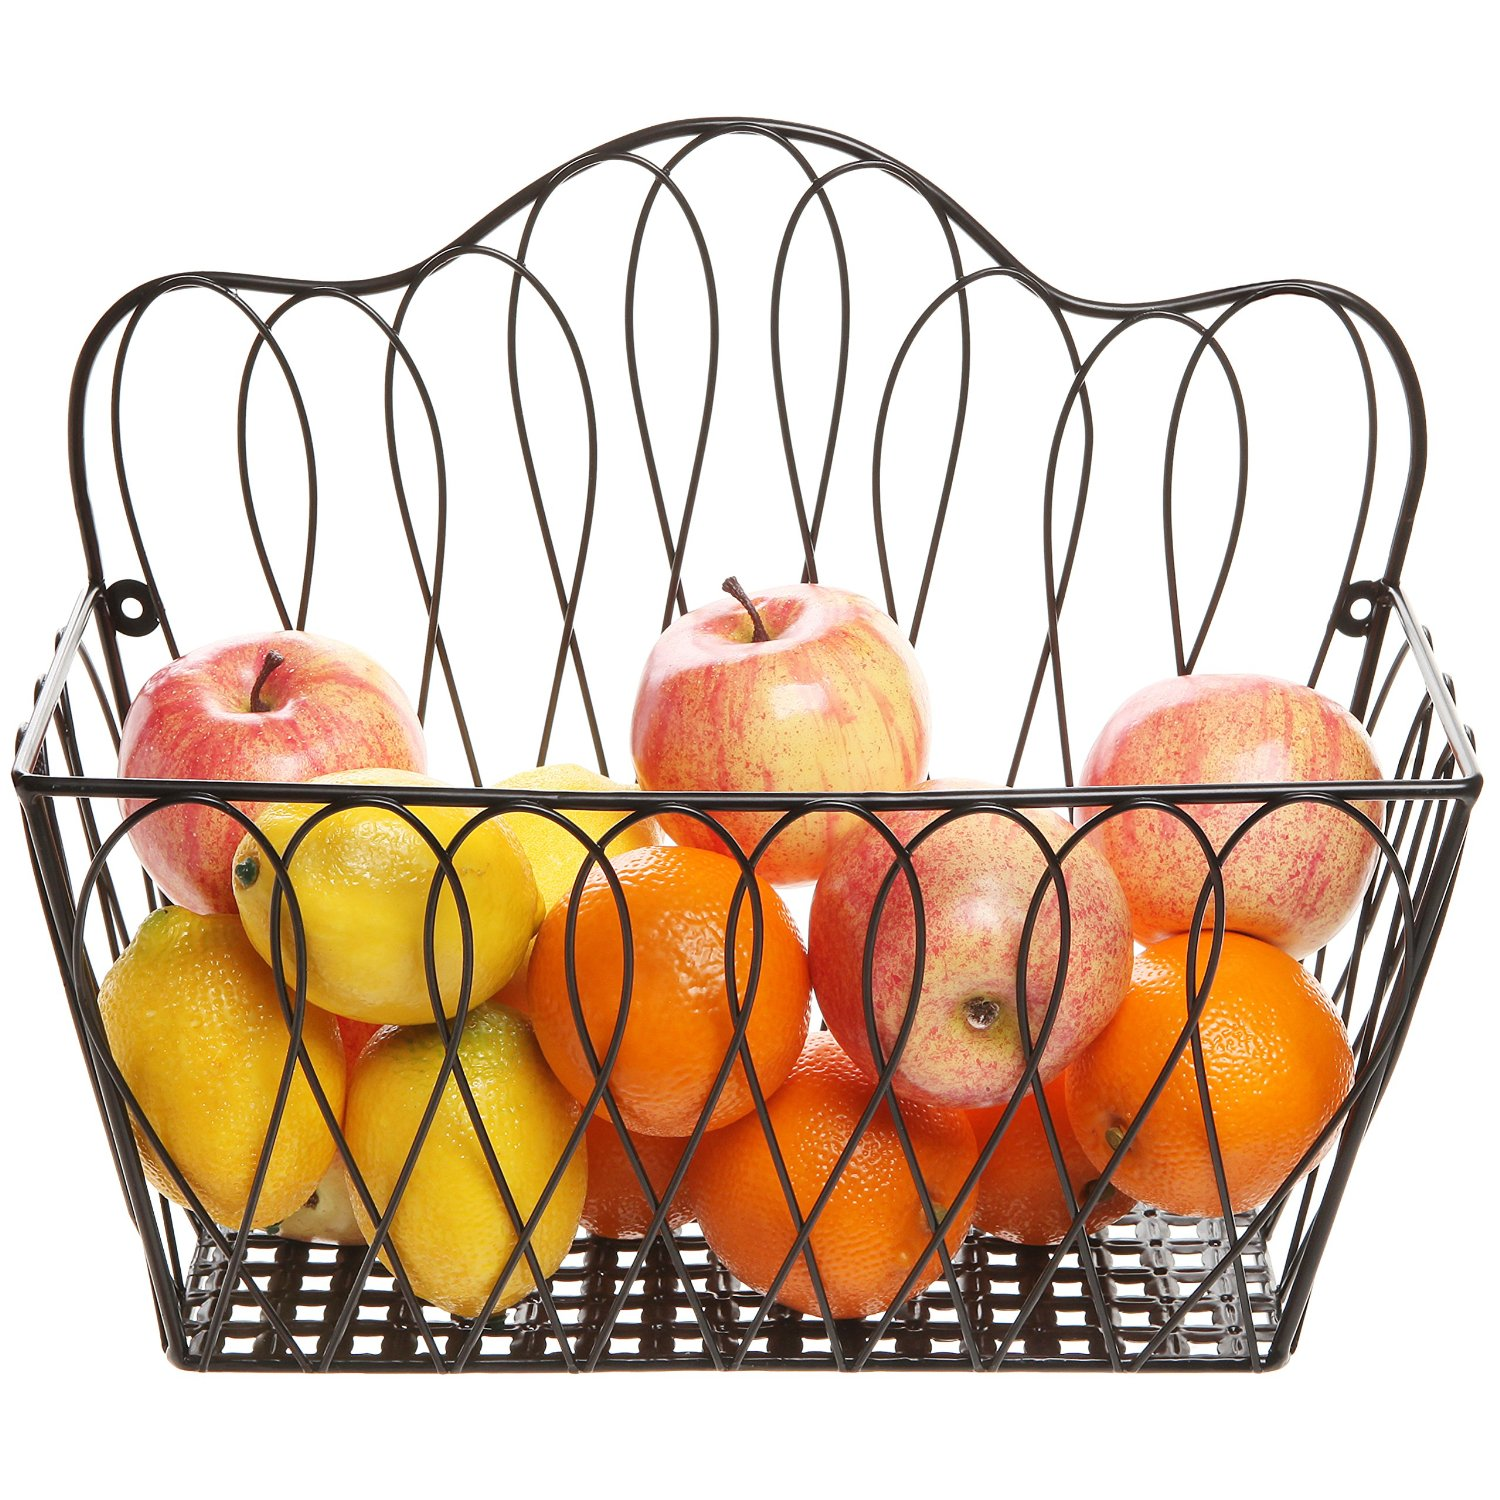 Cool Wall Mounted Fruit Basket